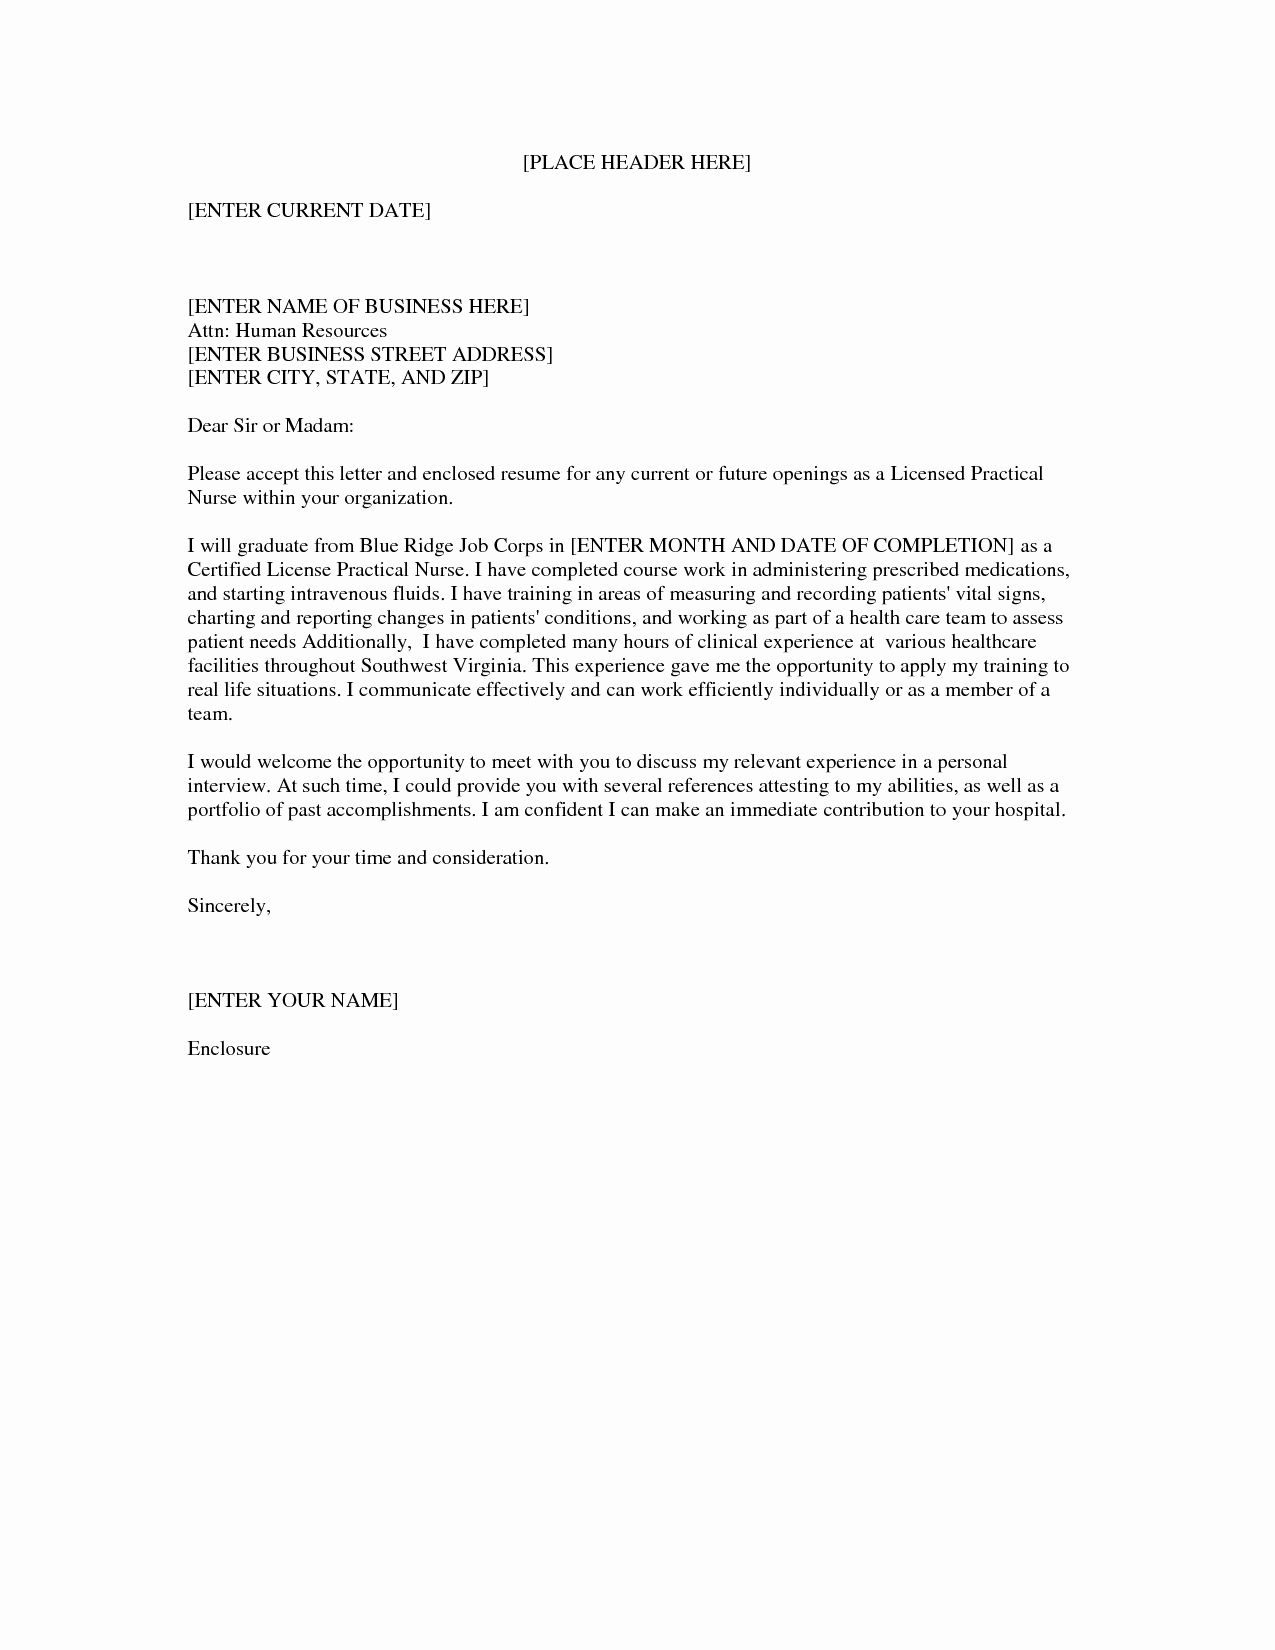 Sample Cover Letter for Nurse Luxury Lpn Nursing Cover Letter Sample